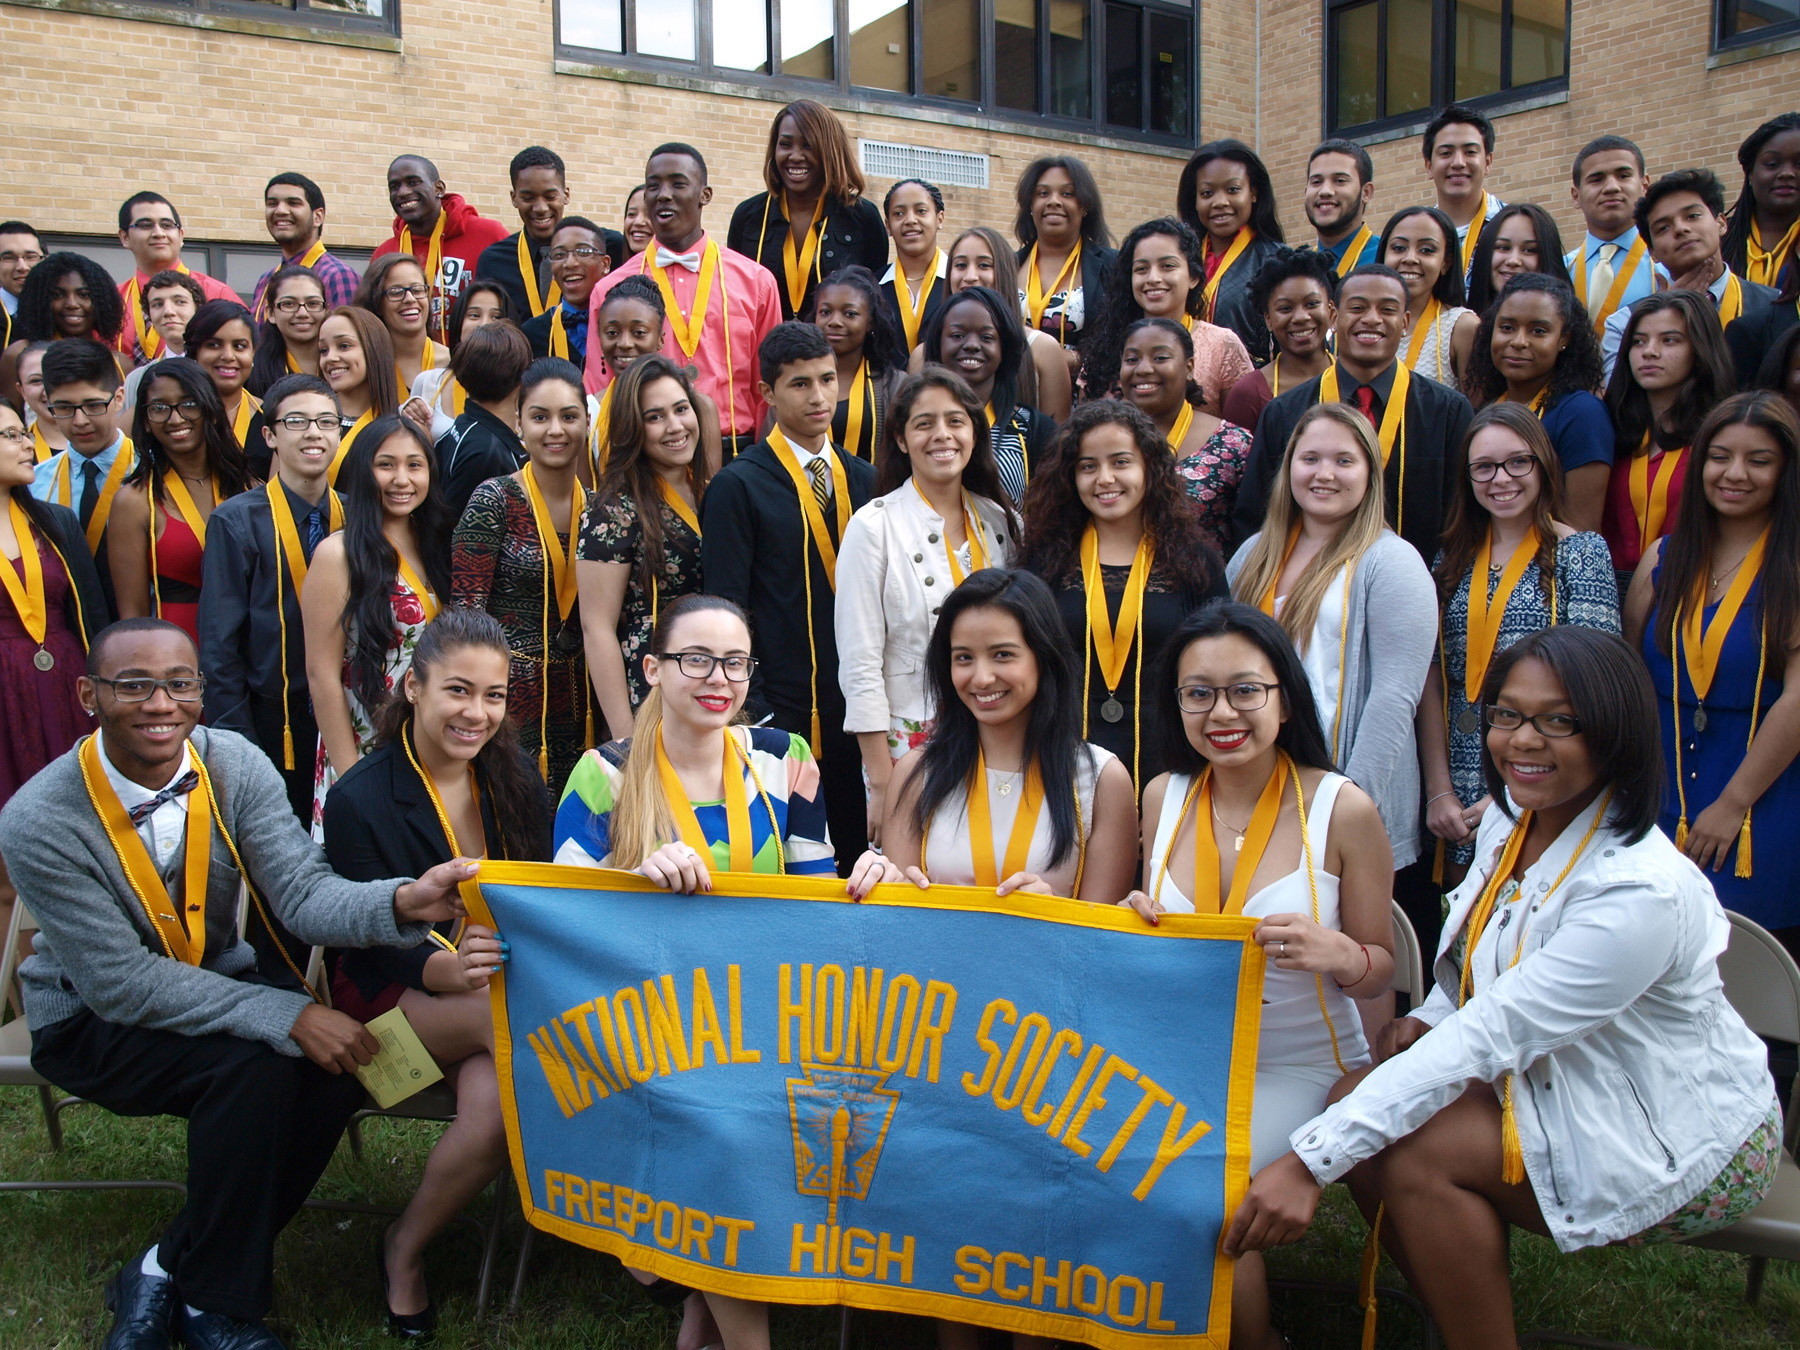 FHS National Honor Society: The graduating seniors in the Freeport High School National Honor Society posed for a group photo after the senior recognition/officer induction ceremony held in the courtyard at the high school.